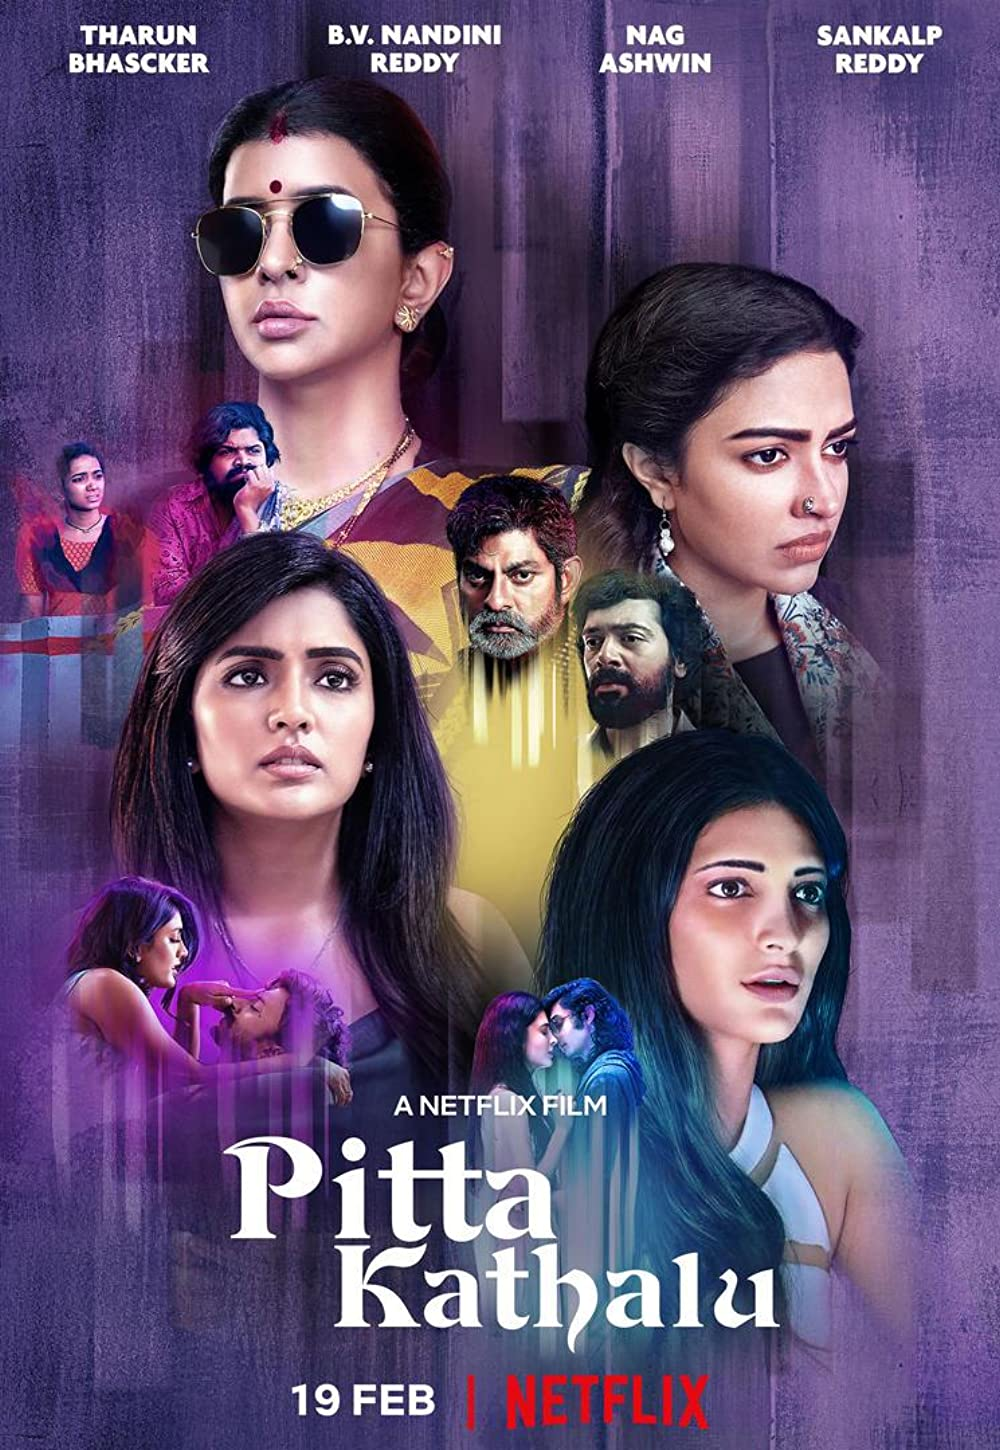 Pitta Kathalu 2021 S01 Complete Hindi Dubbed Netflix Series 1080p HDRip 2.2GB Download